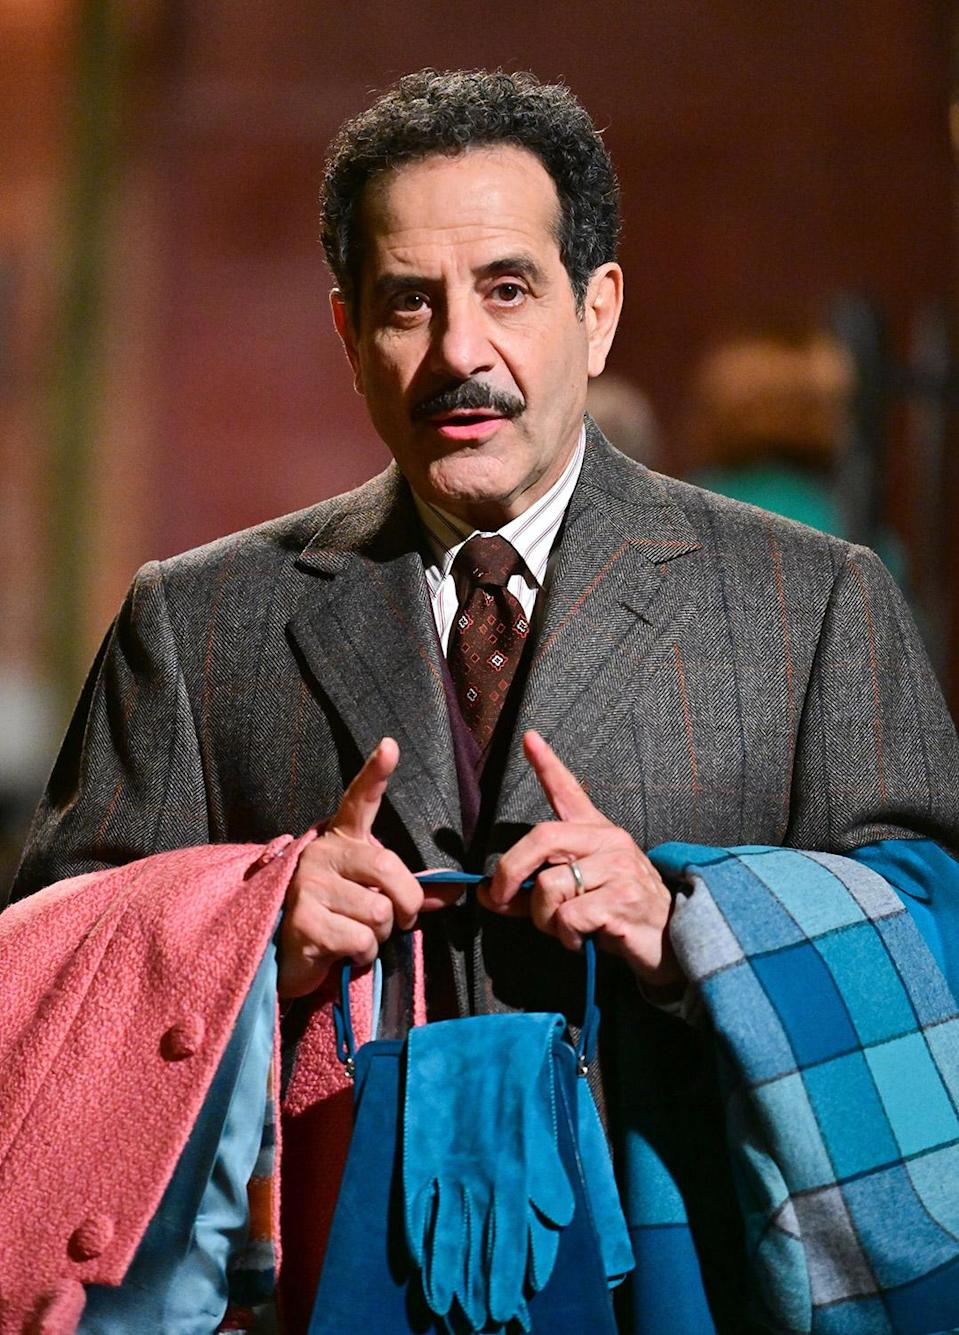 <p>Tony Shalhoub, who plays Brosnahan's father in the series, carries some coats and accessories while filming on May 27. </p>